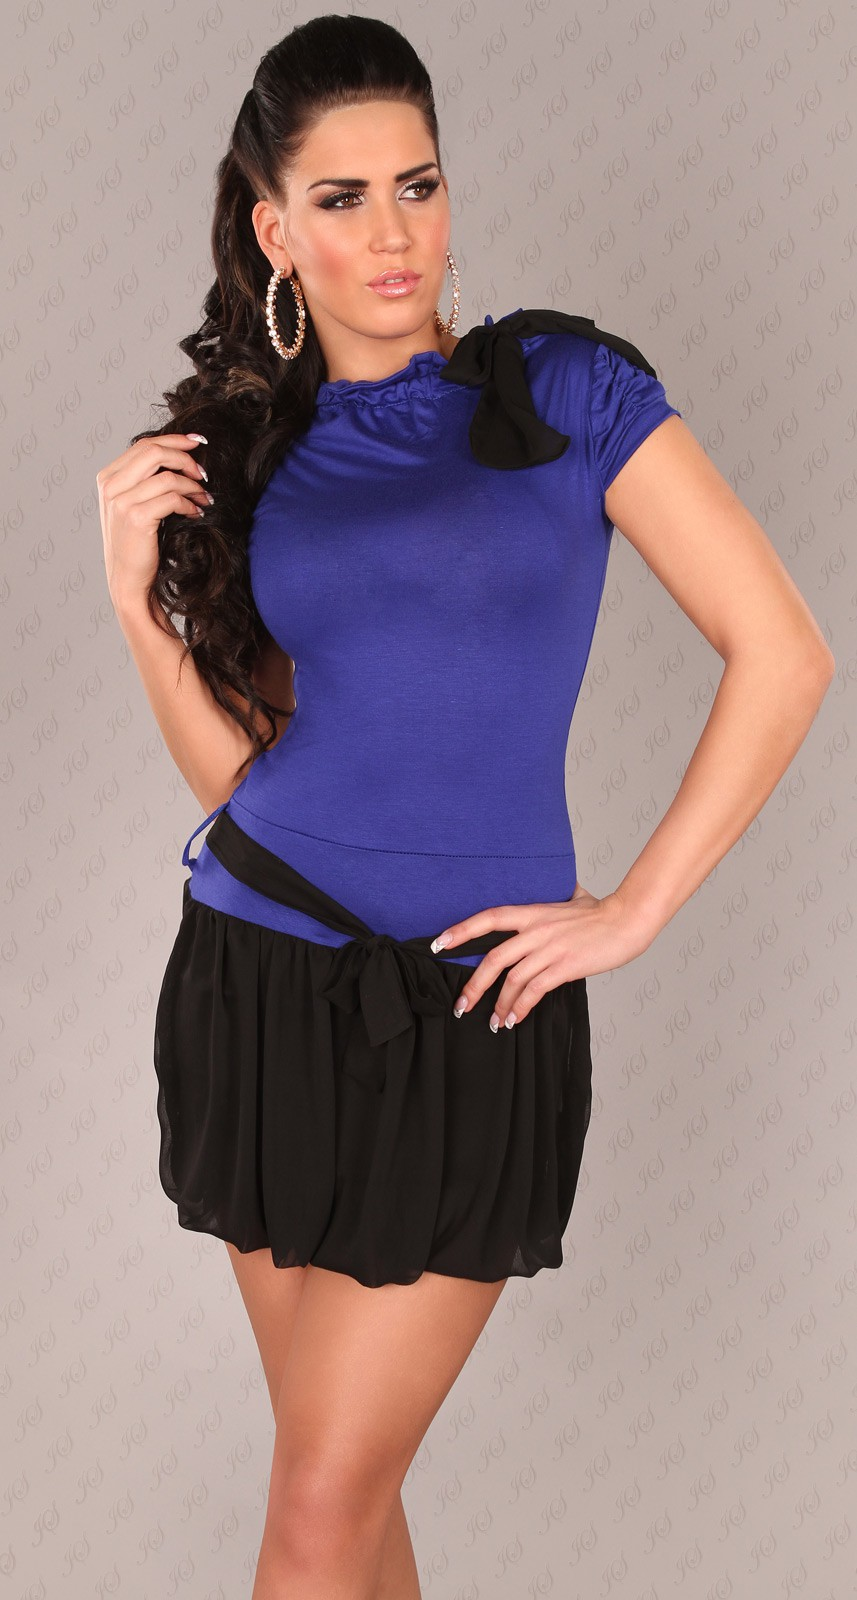 Blue Short Sleeves Bubble Skirt Belted Dress